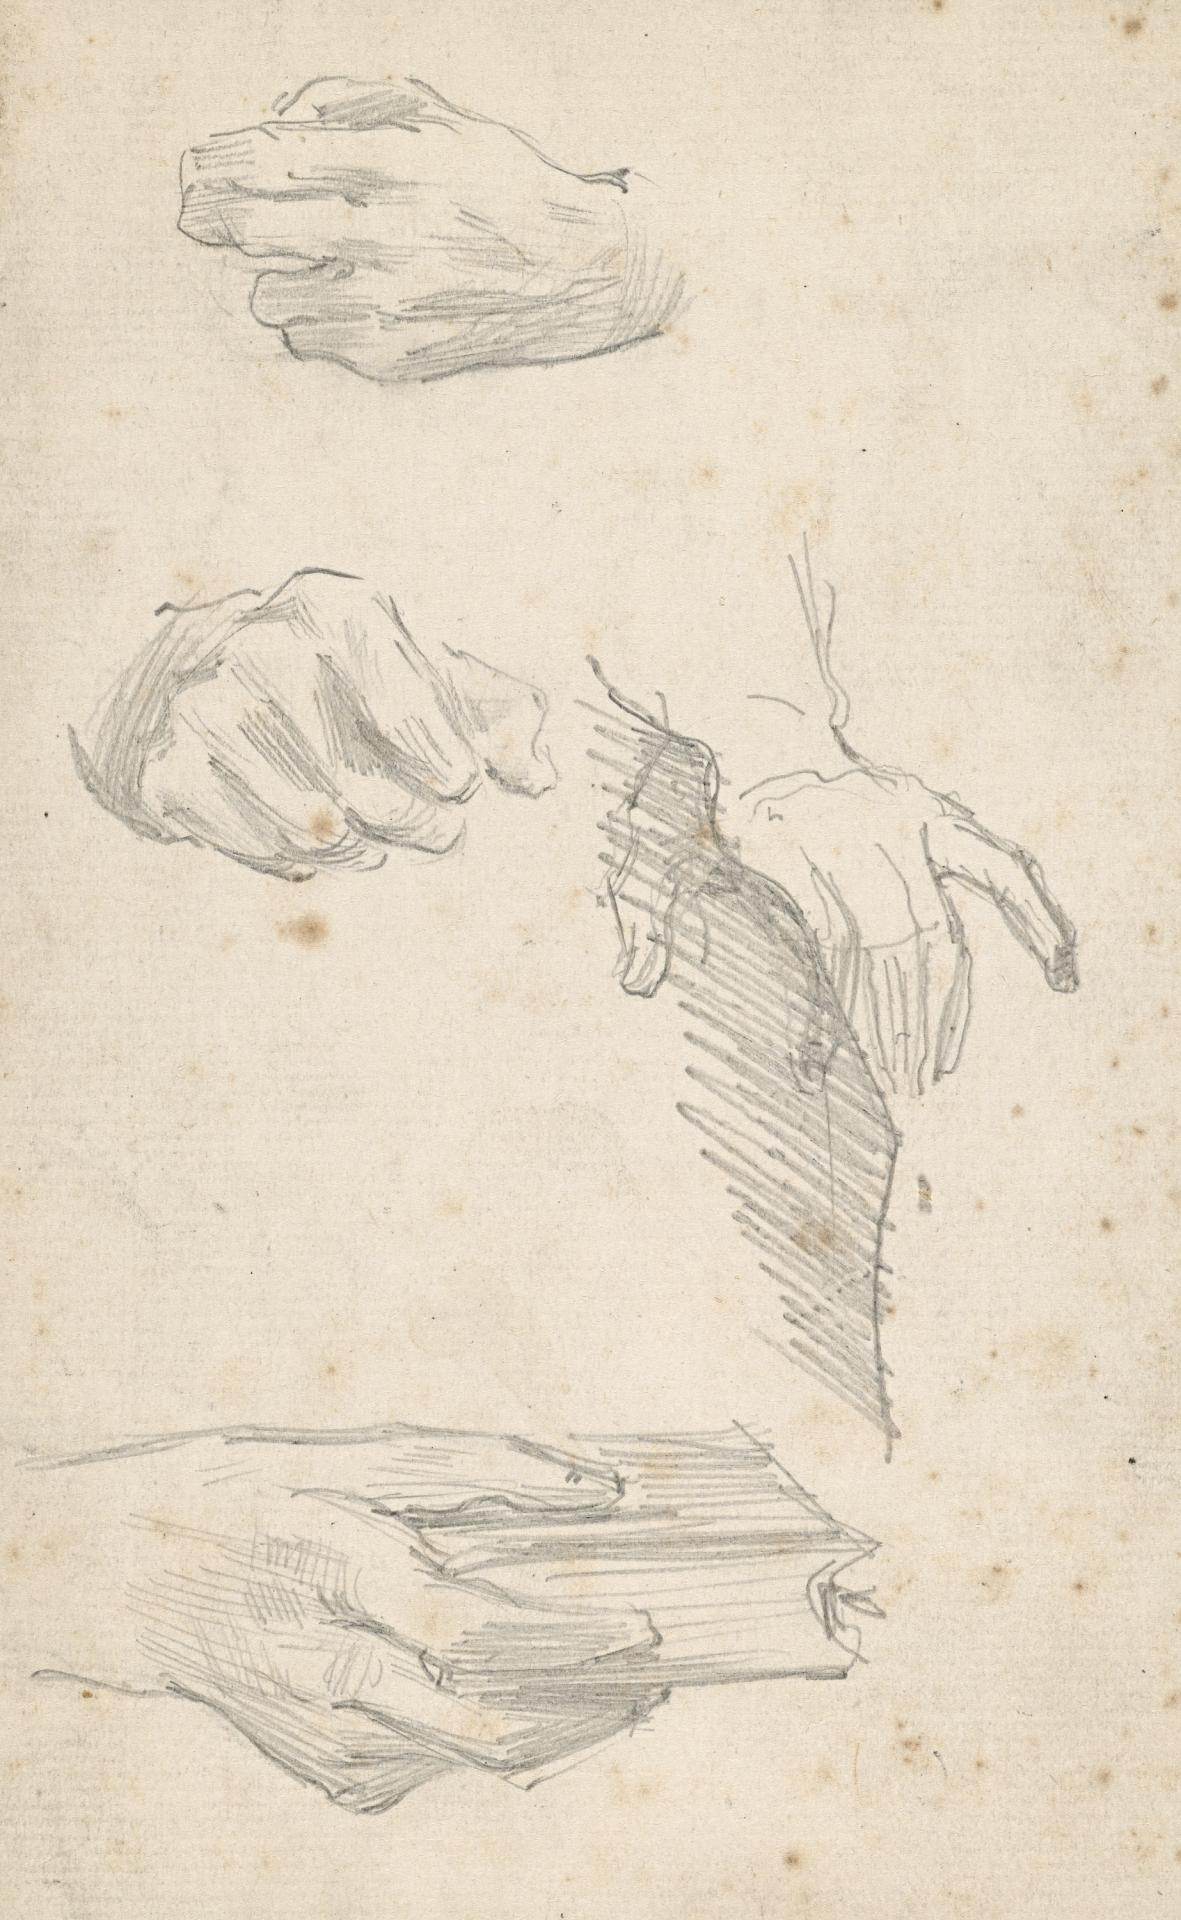 Four studies of hands